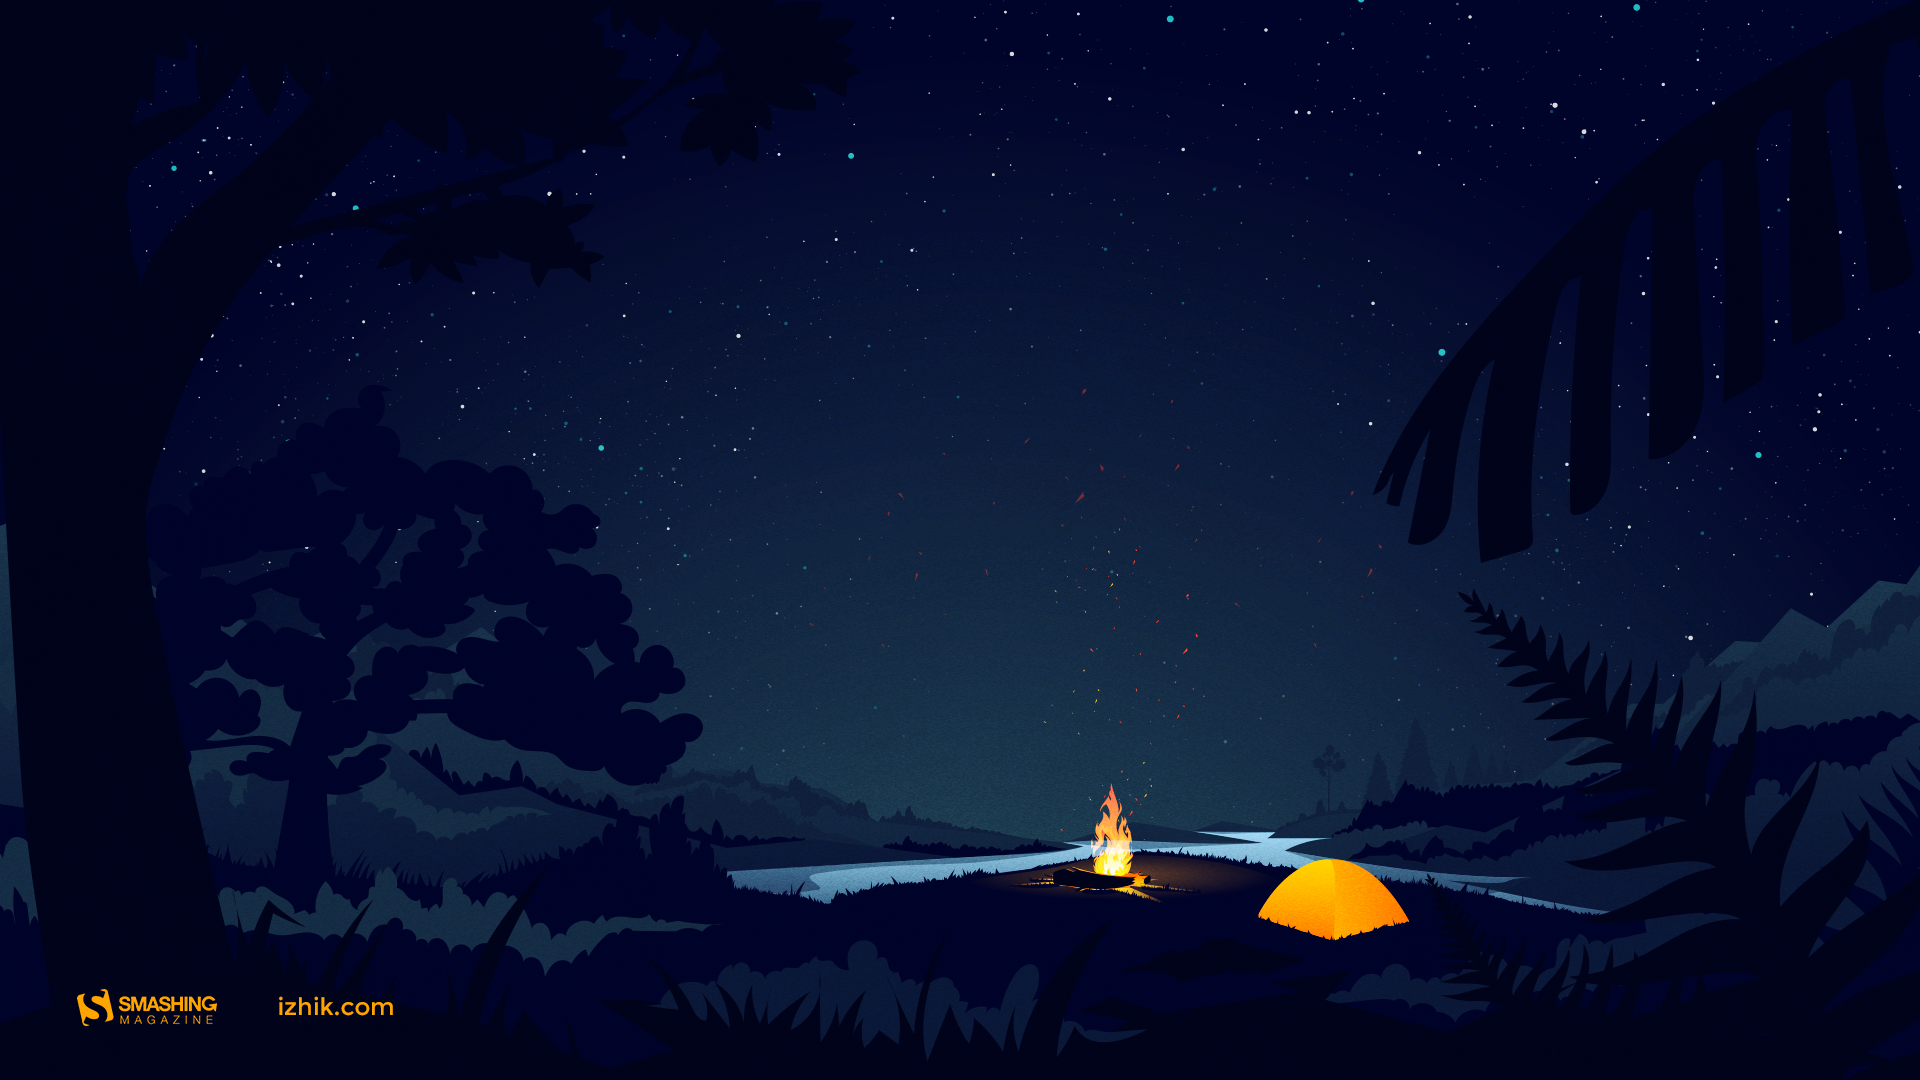 Download Wallpaper Night Cartoon - aug-16-psst-its-camping-time-nocal-1920x1080  Pictures.jpg